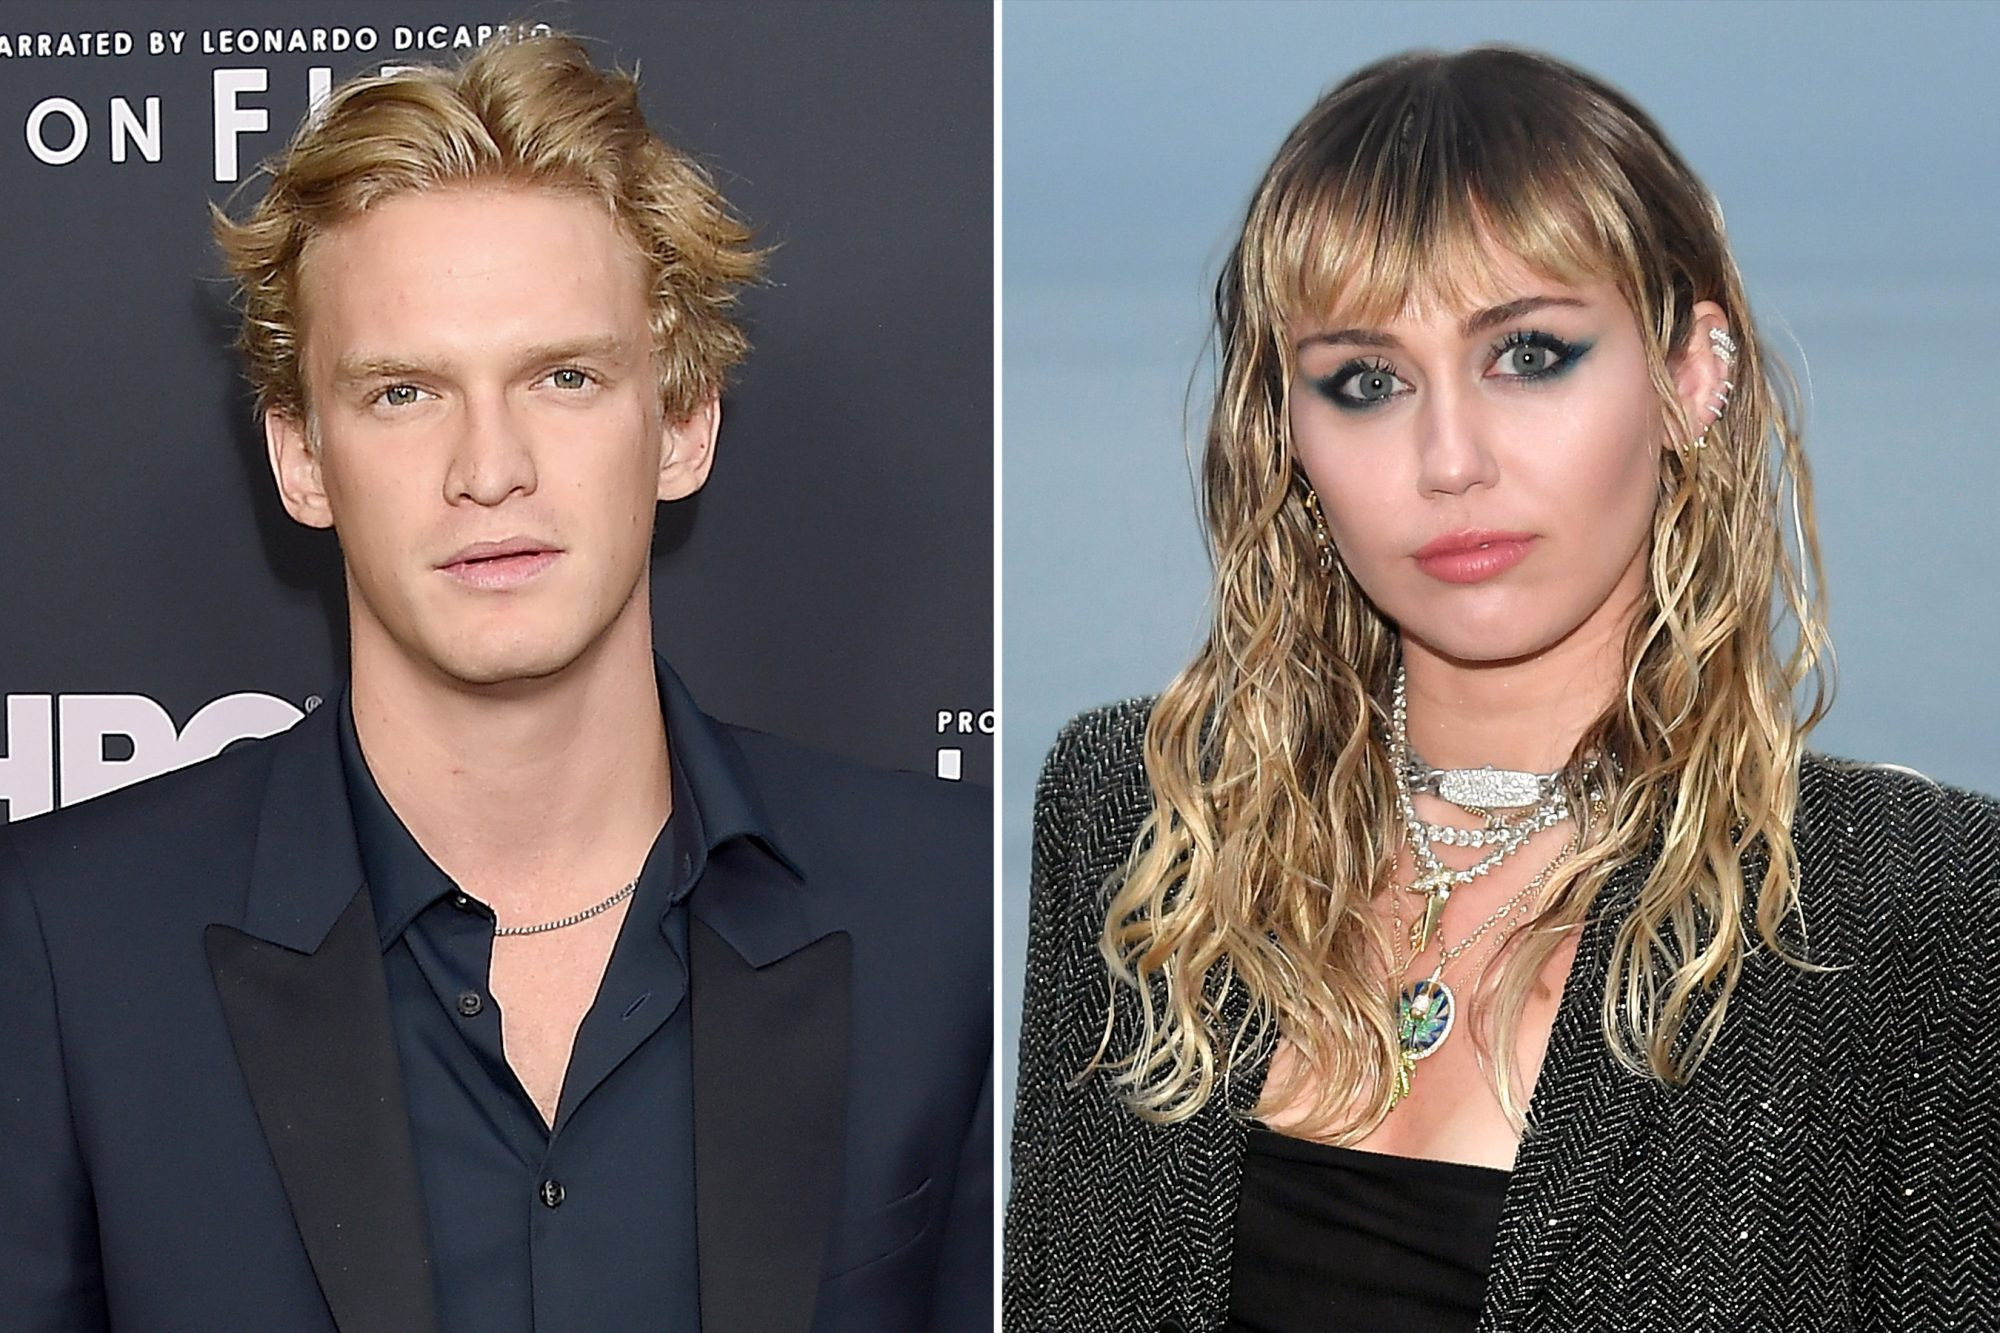 Miley Cyrus and Cody Simpson Broke up over Marriage Issues